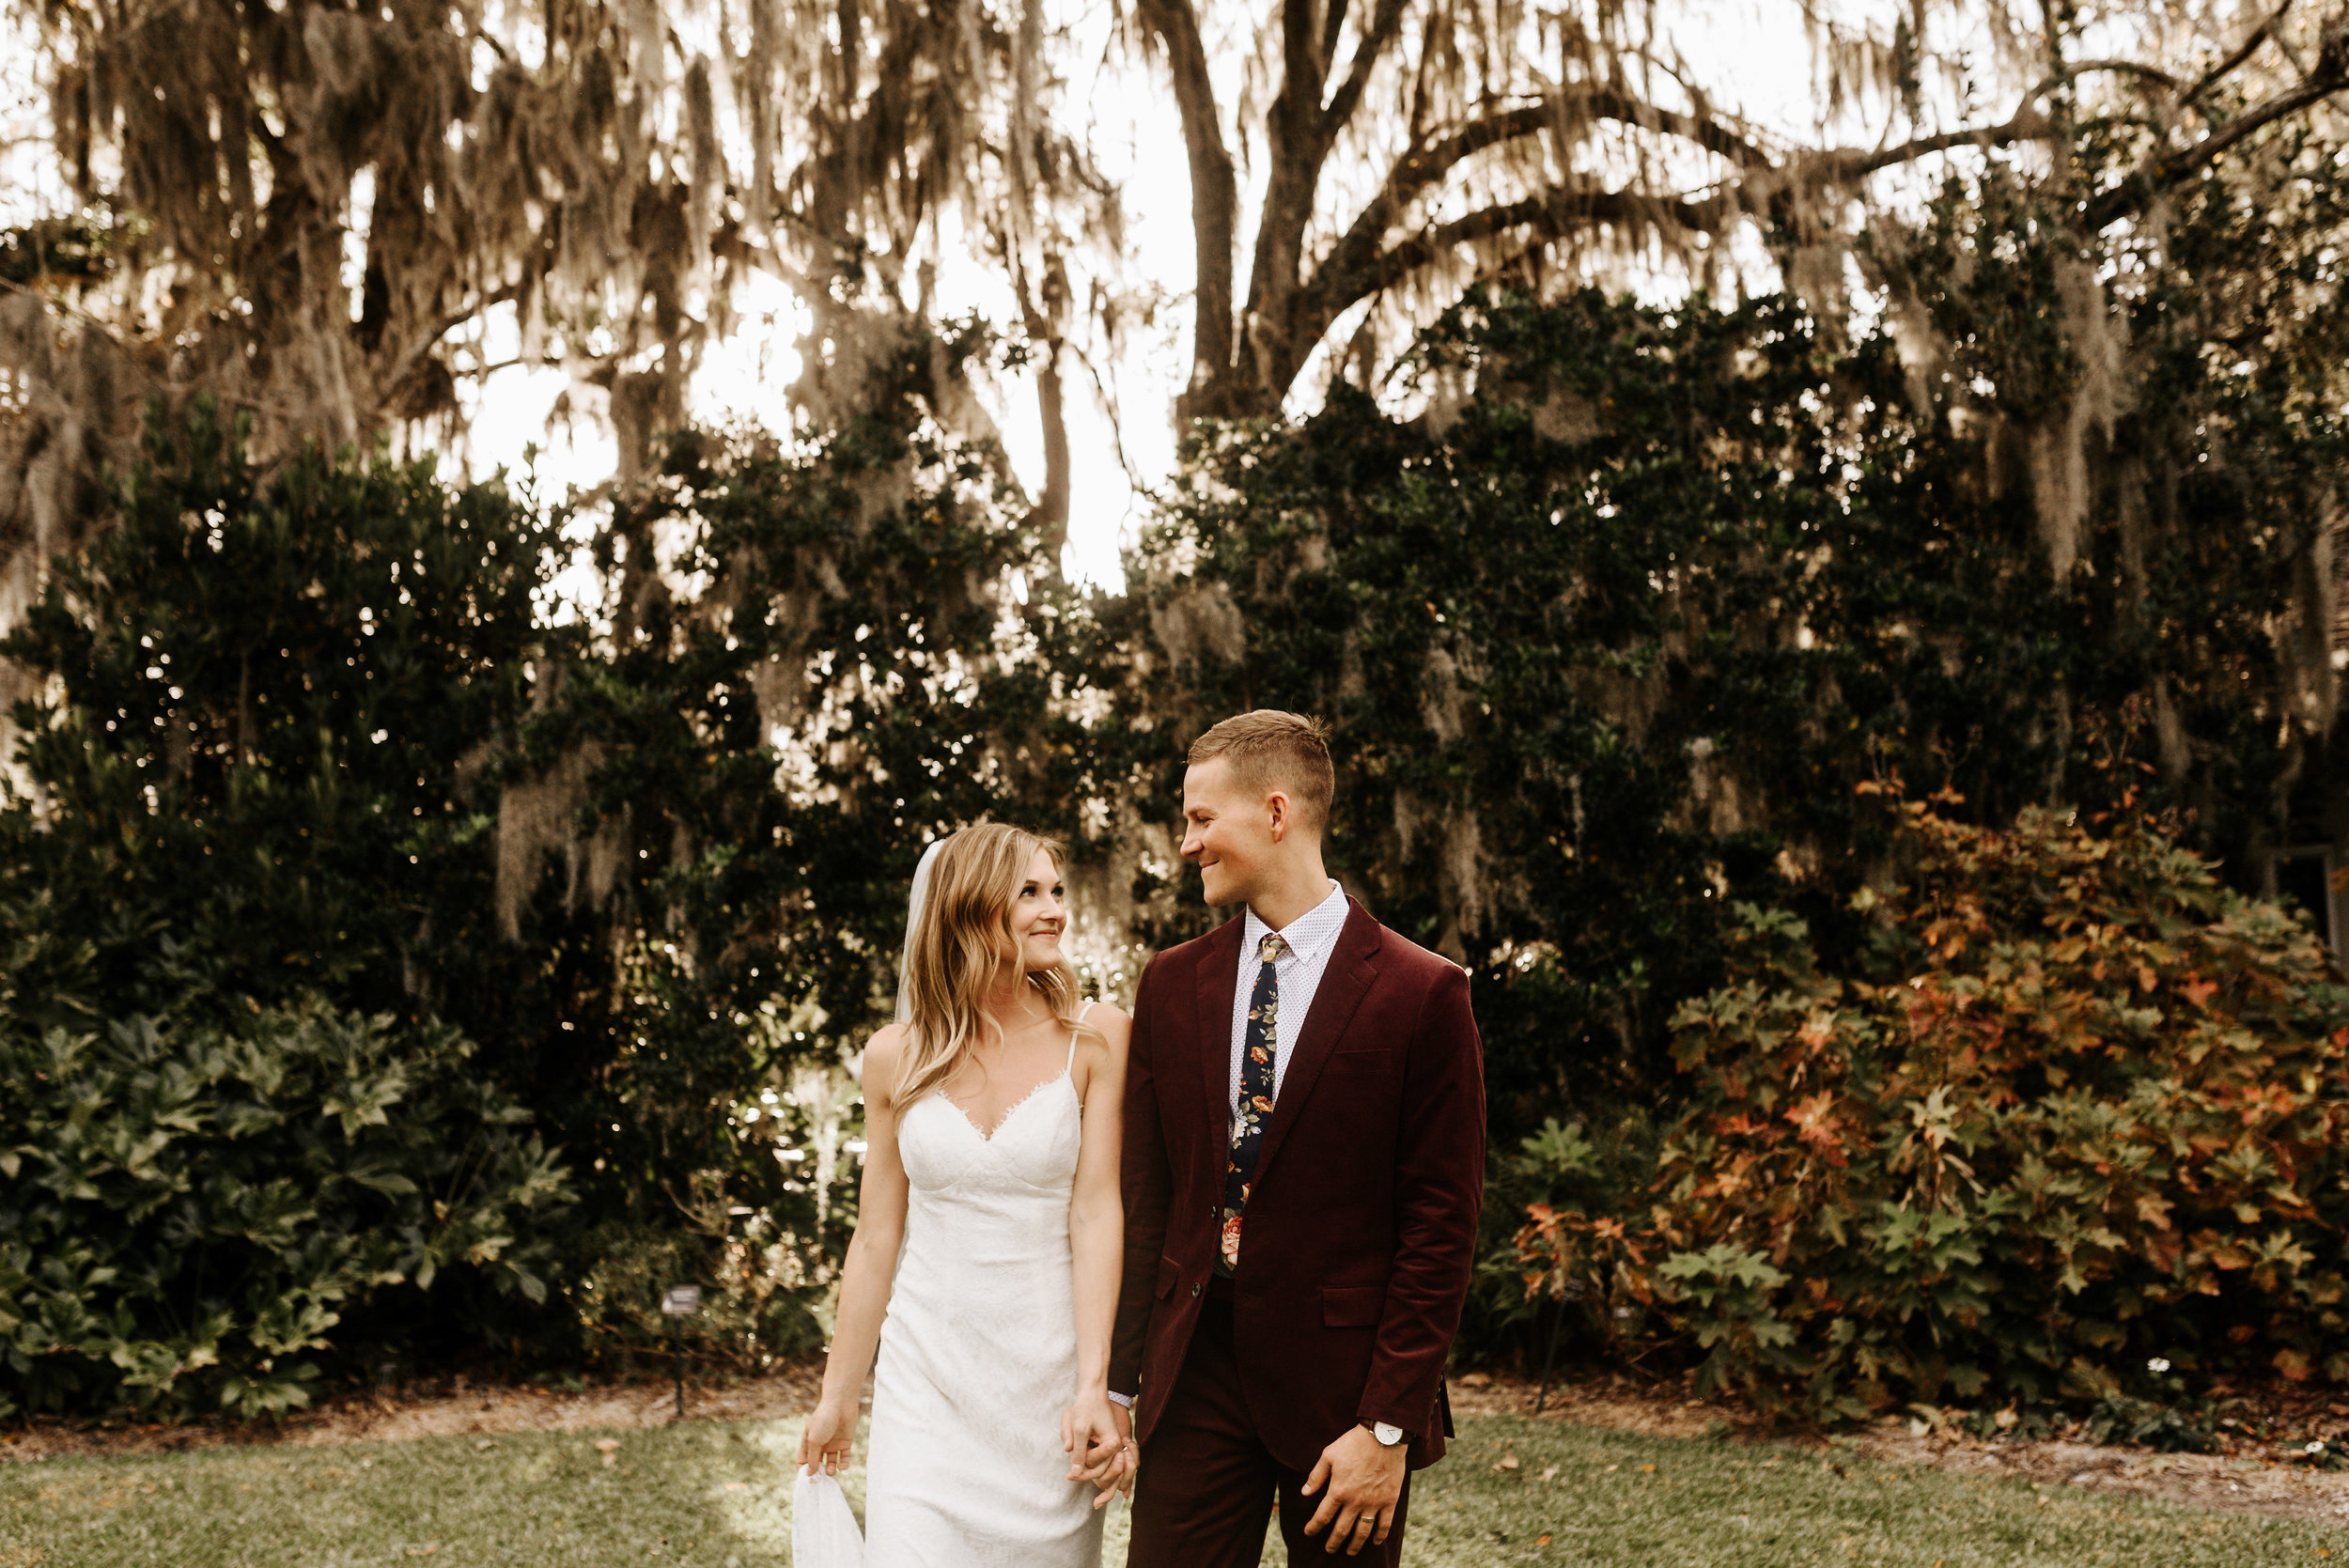 Kourtney_Sean_Savannah_Georgia_Wedding_Wormsloe_Histroic_Site_Coastal_Georgia_Botanical_Gardens_Photography_by_V_4171.jpg